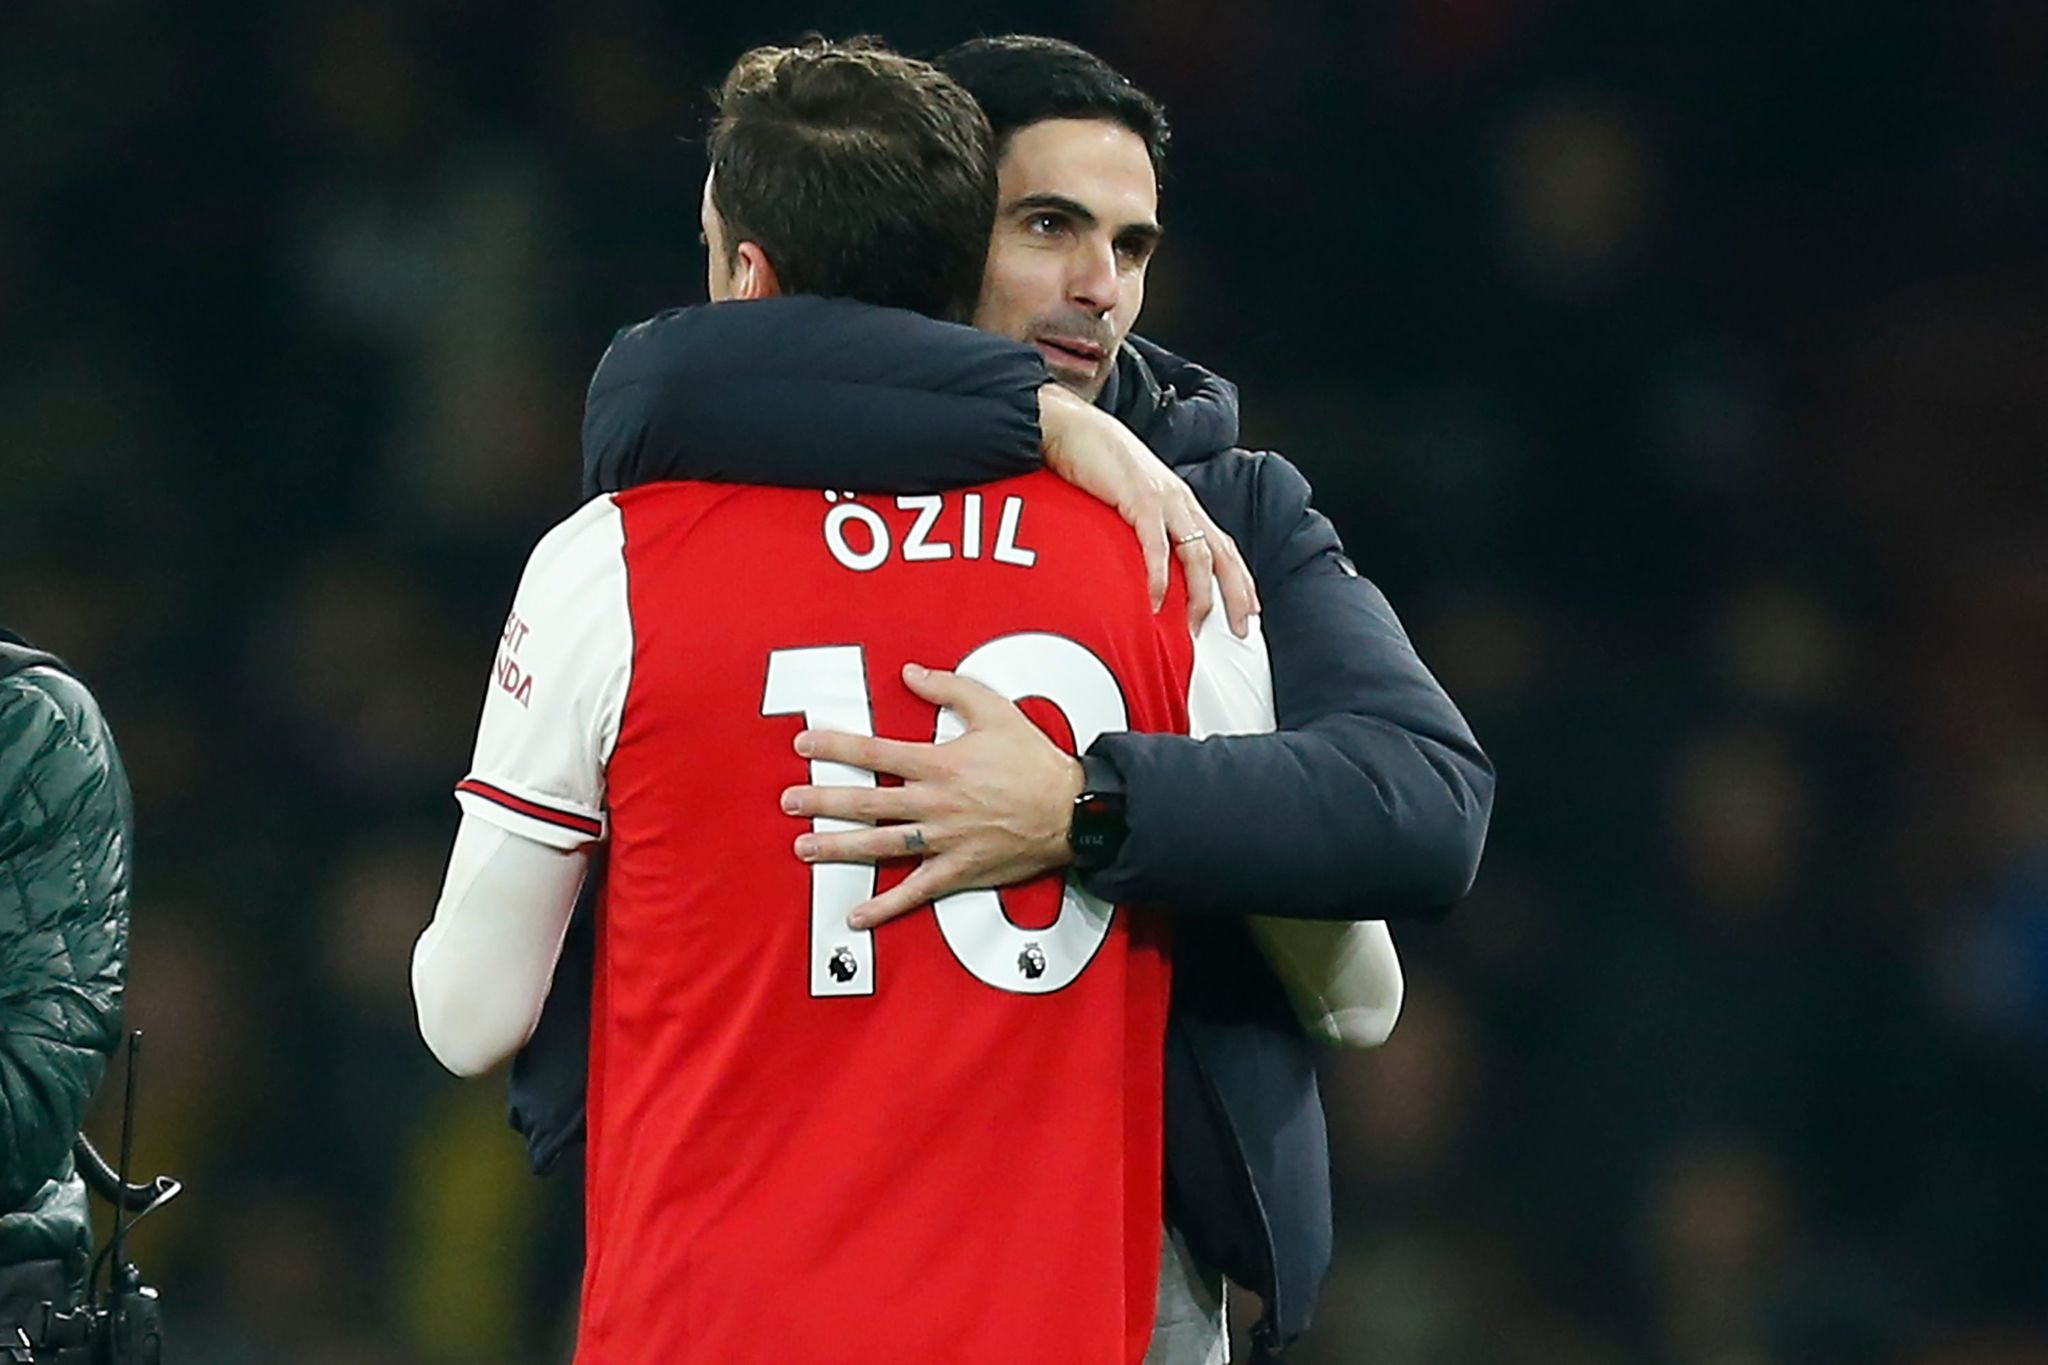 Arsenals Spanish head coach Mikel Arteta (R) embraces Arsenals German midfielder Mesut <HIT>Ozil</HIT> (L) on the pitch after the English Premier League football match between Arsenal and Manchester United at the Emirates Stadium in London on January 1, 2020. - Arsenal won the game 2-0. (Photo by Ian KINGTON / IKIMAGES / AFP) / RESTRICTED TO EDITORIAL USE. No use with unauthorized audio, video, data, fixture lists, club/league logos or live services. Online in-match use limited to 45 images, no video emulation. No use in betting, games or single club/league/player publications